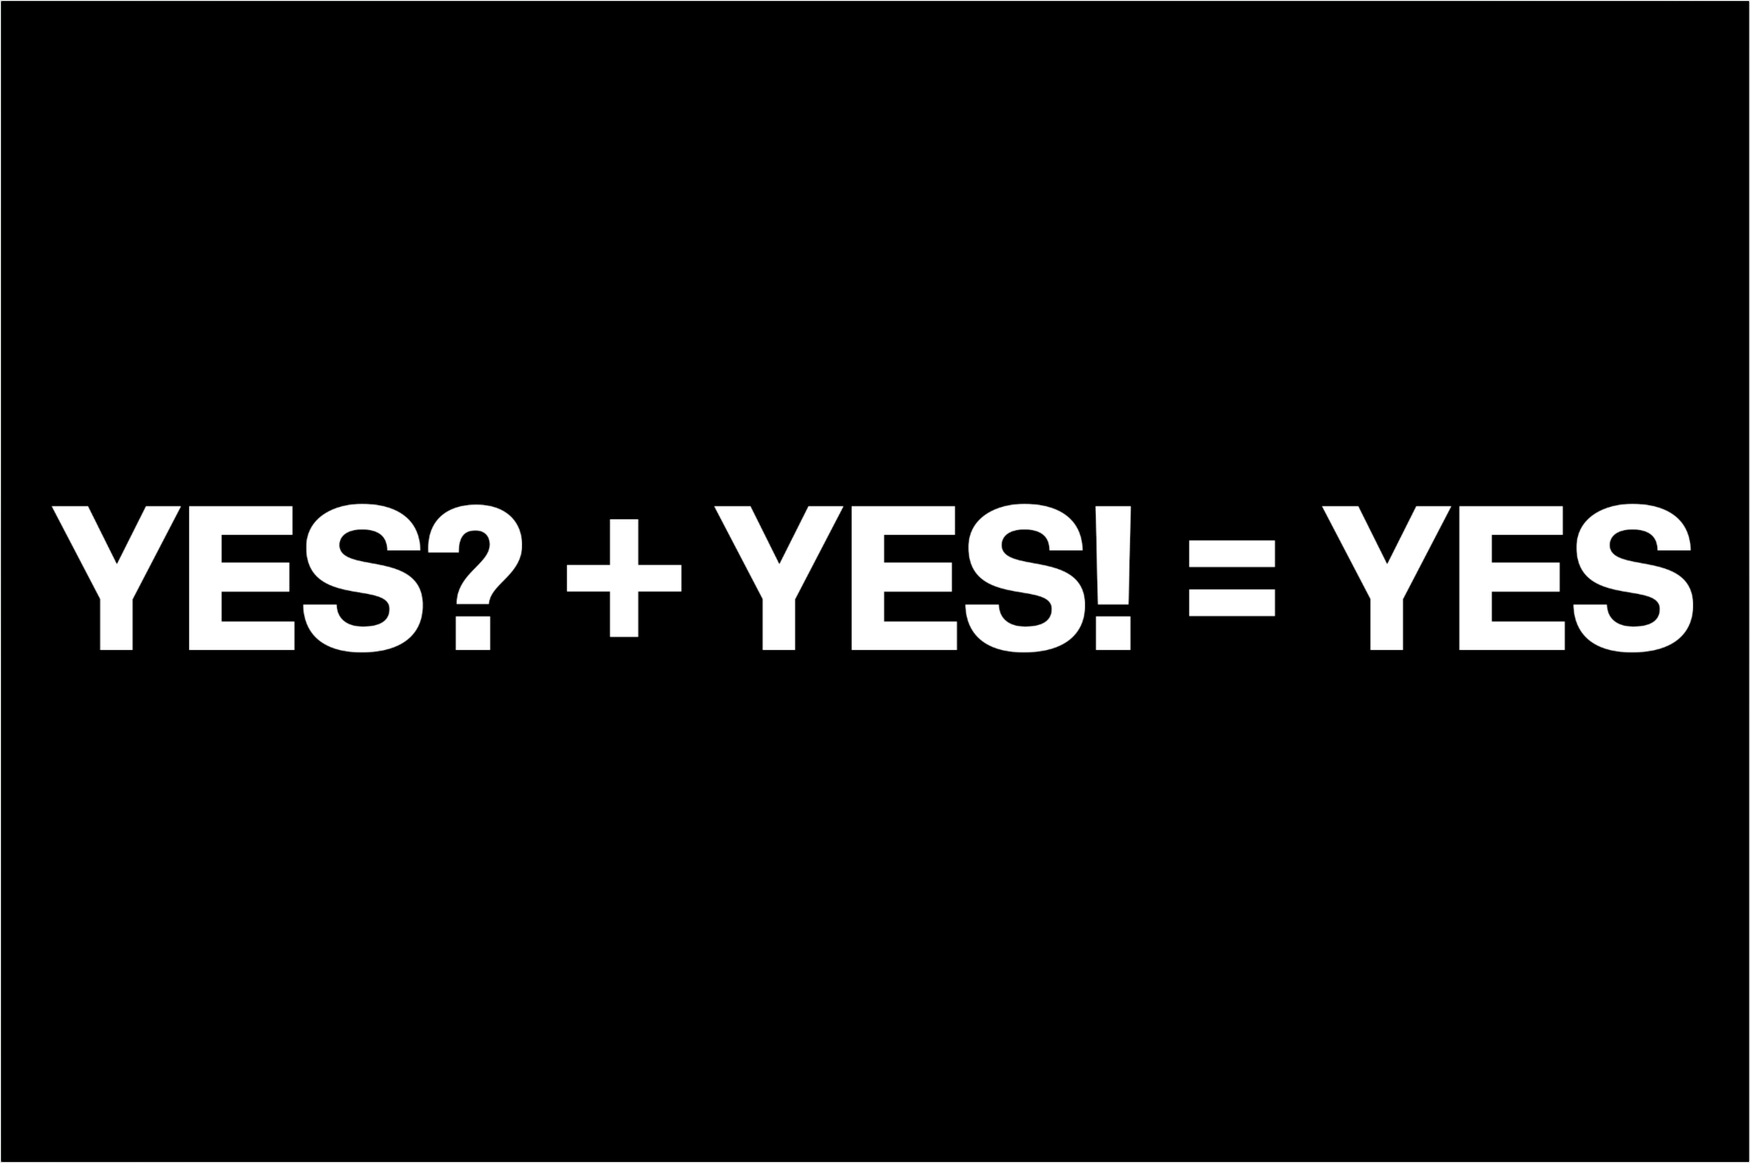 Yes? + Yes! = Yes